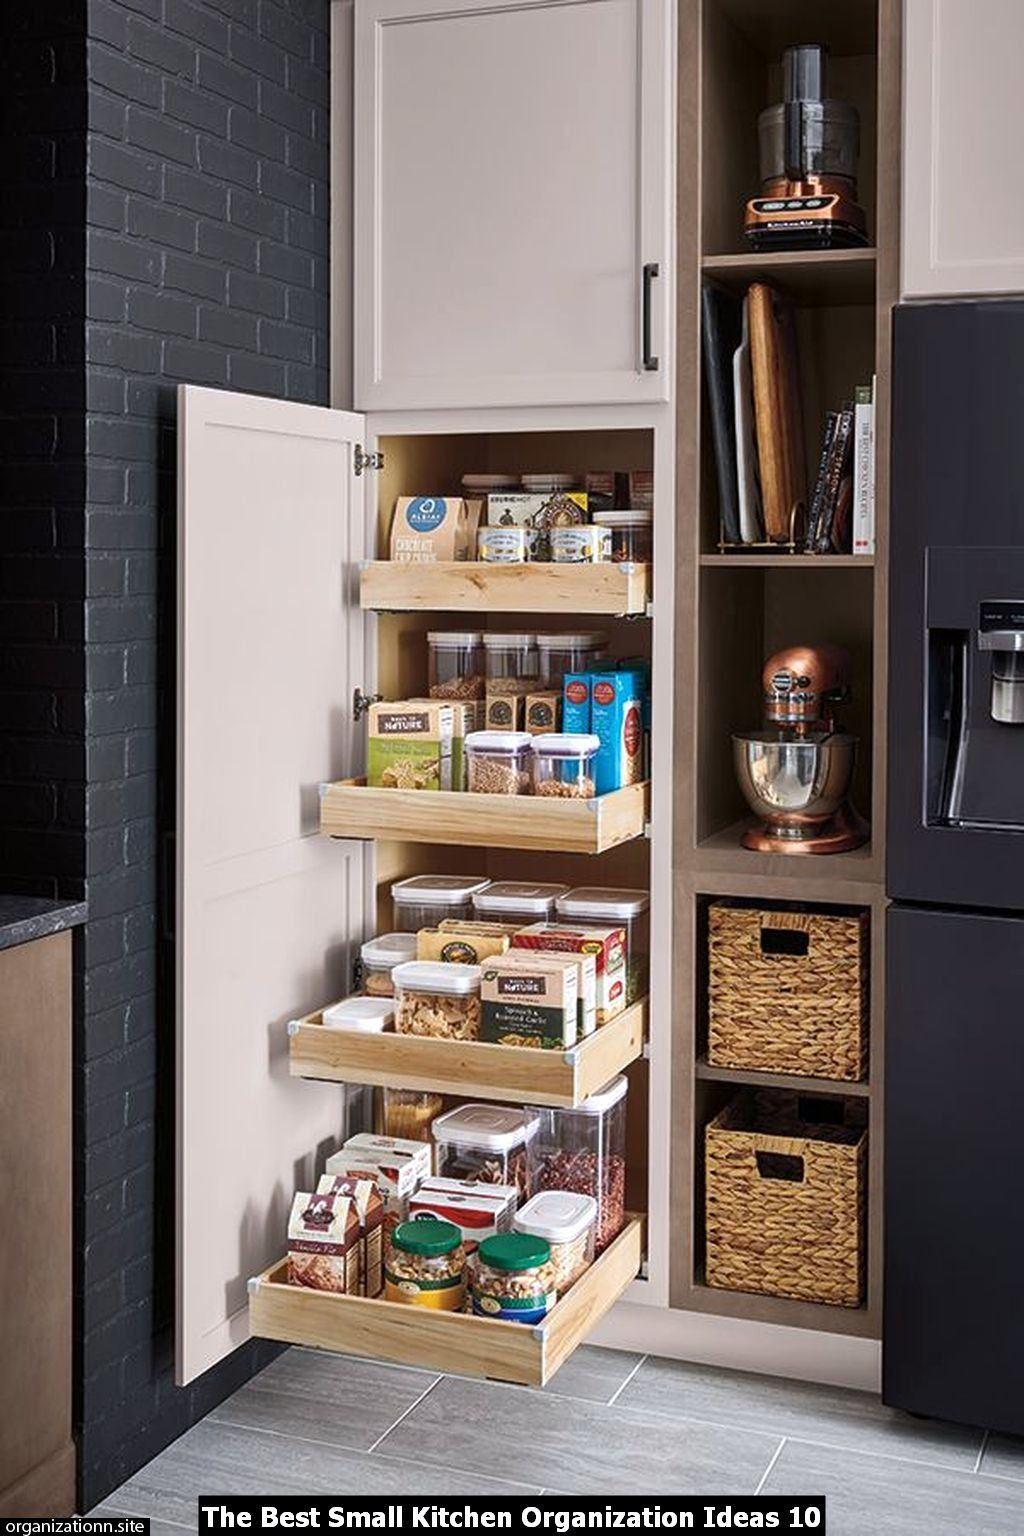 The Top 25 Small Kitchen Organization Ideas Image 13 Of 30 Minimalist Small Kitchens Kitchen Cabinet Design Kitchen Pantry Design